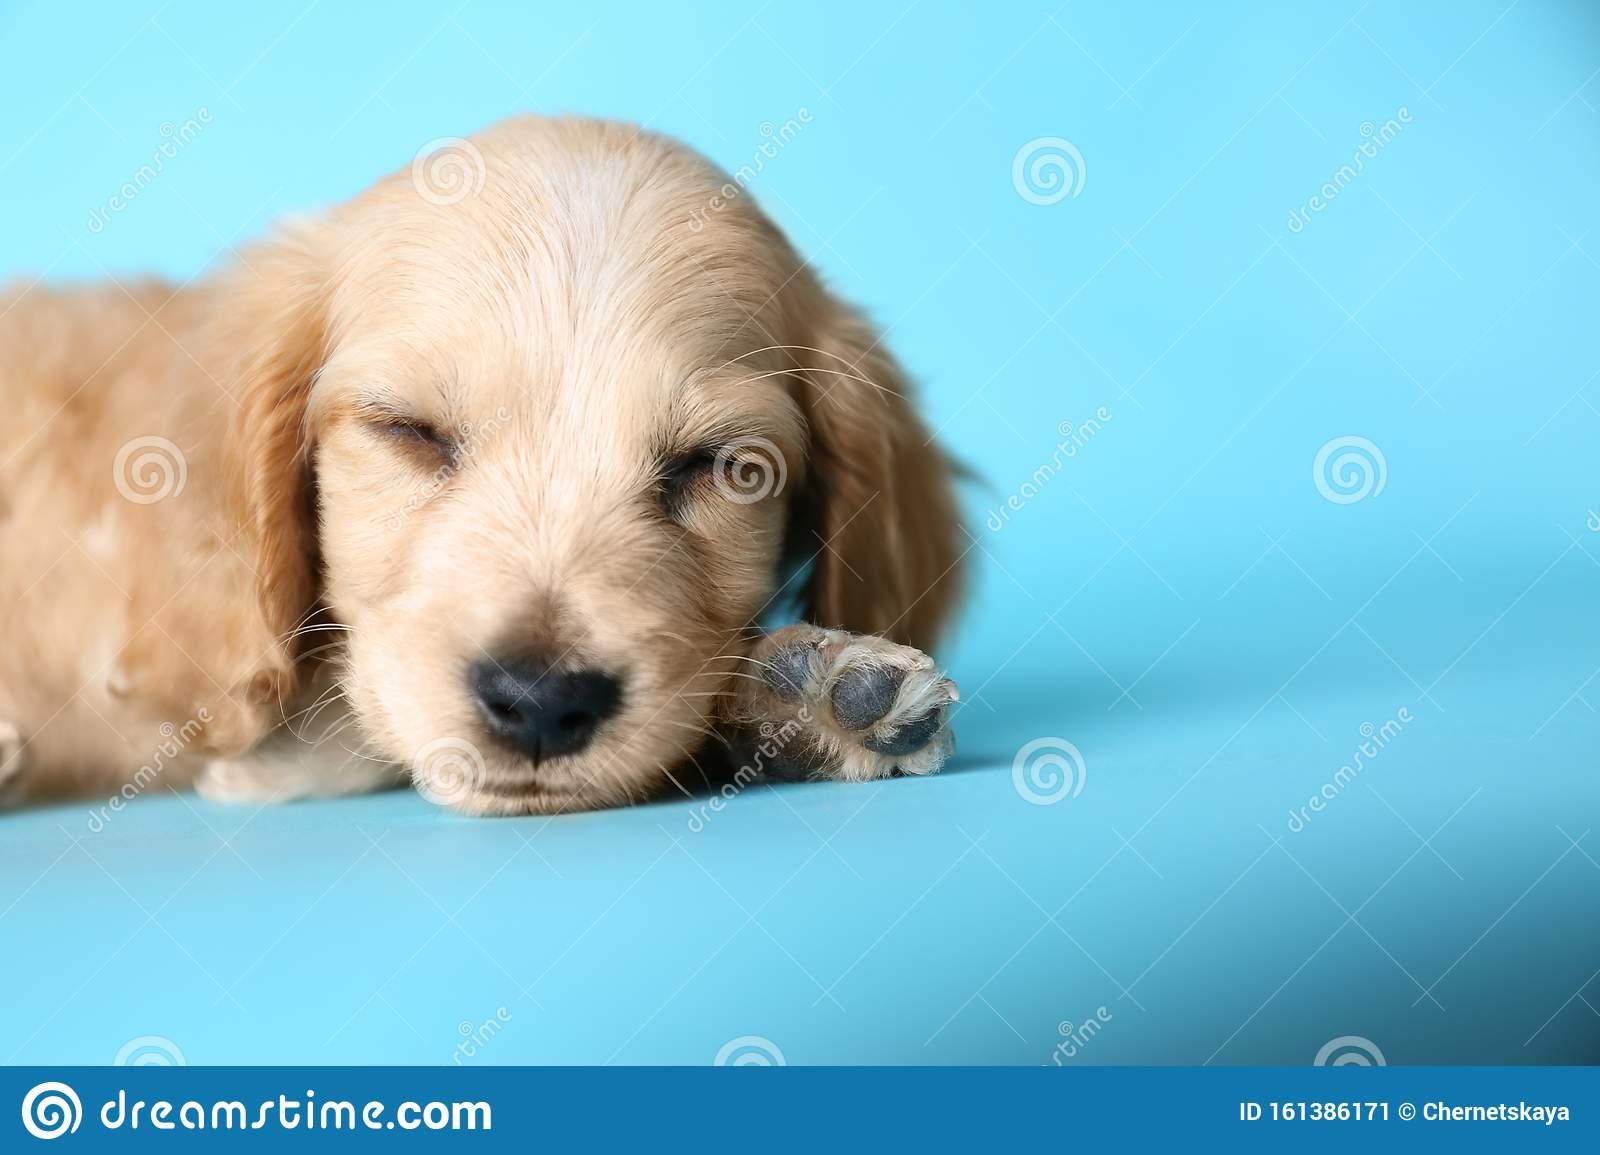 Cute English Cocker Spaniel Puppy Sleeping On Blue Background Space For Text Stock Image Image Of Canine Happy 161386171